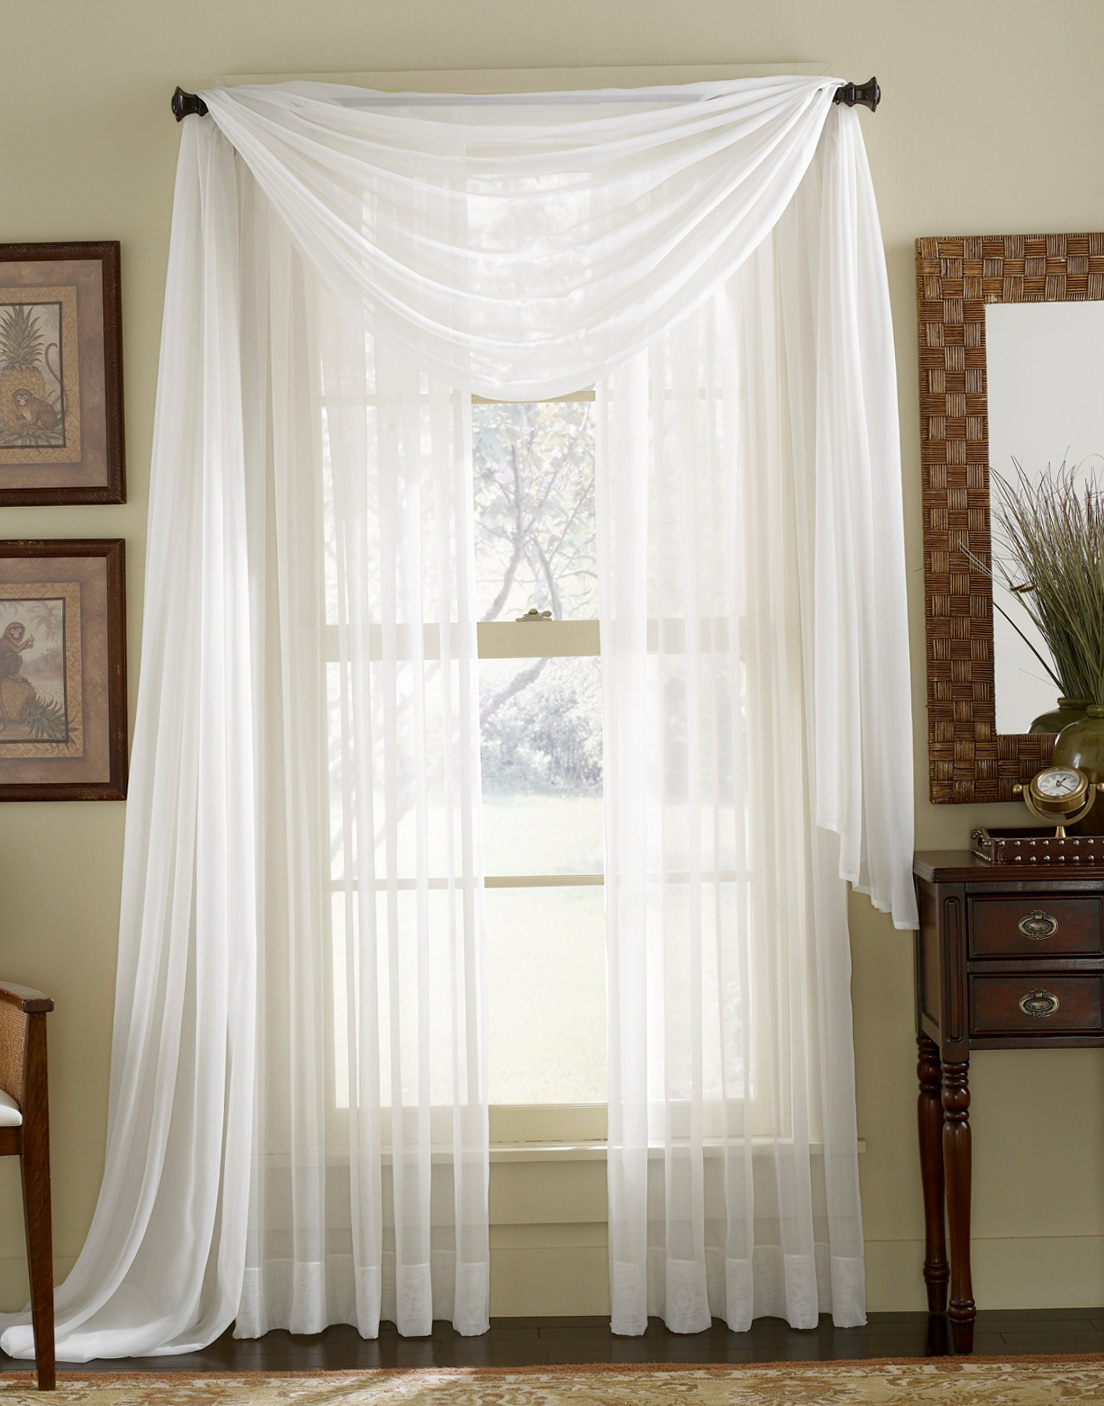 White Sheer Kitchen Curtains  Home Design Ideas